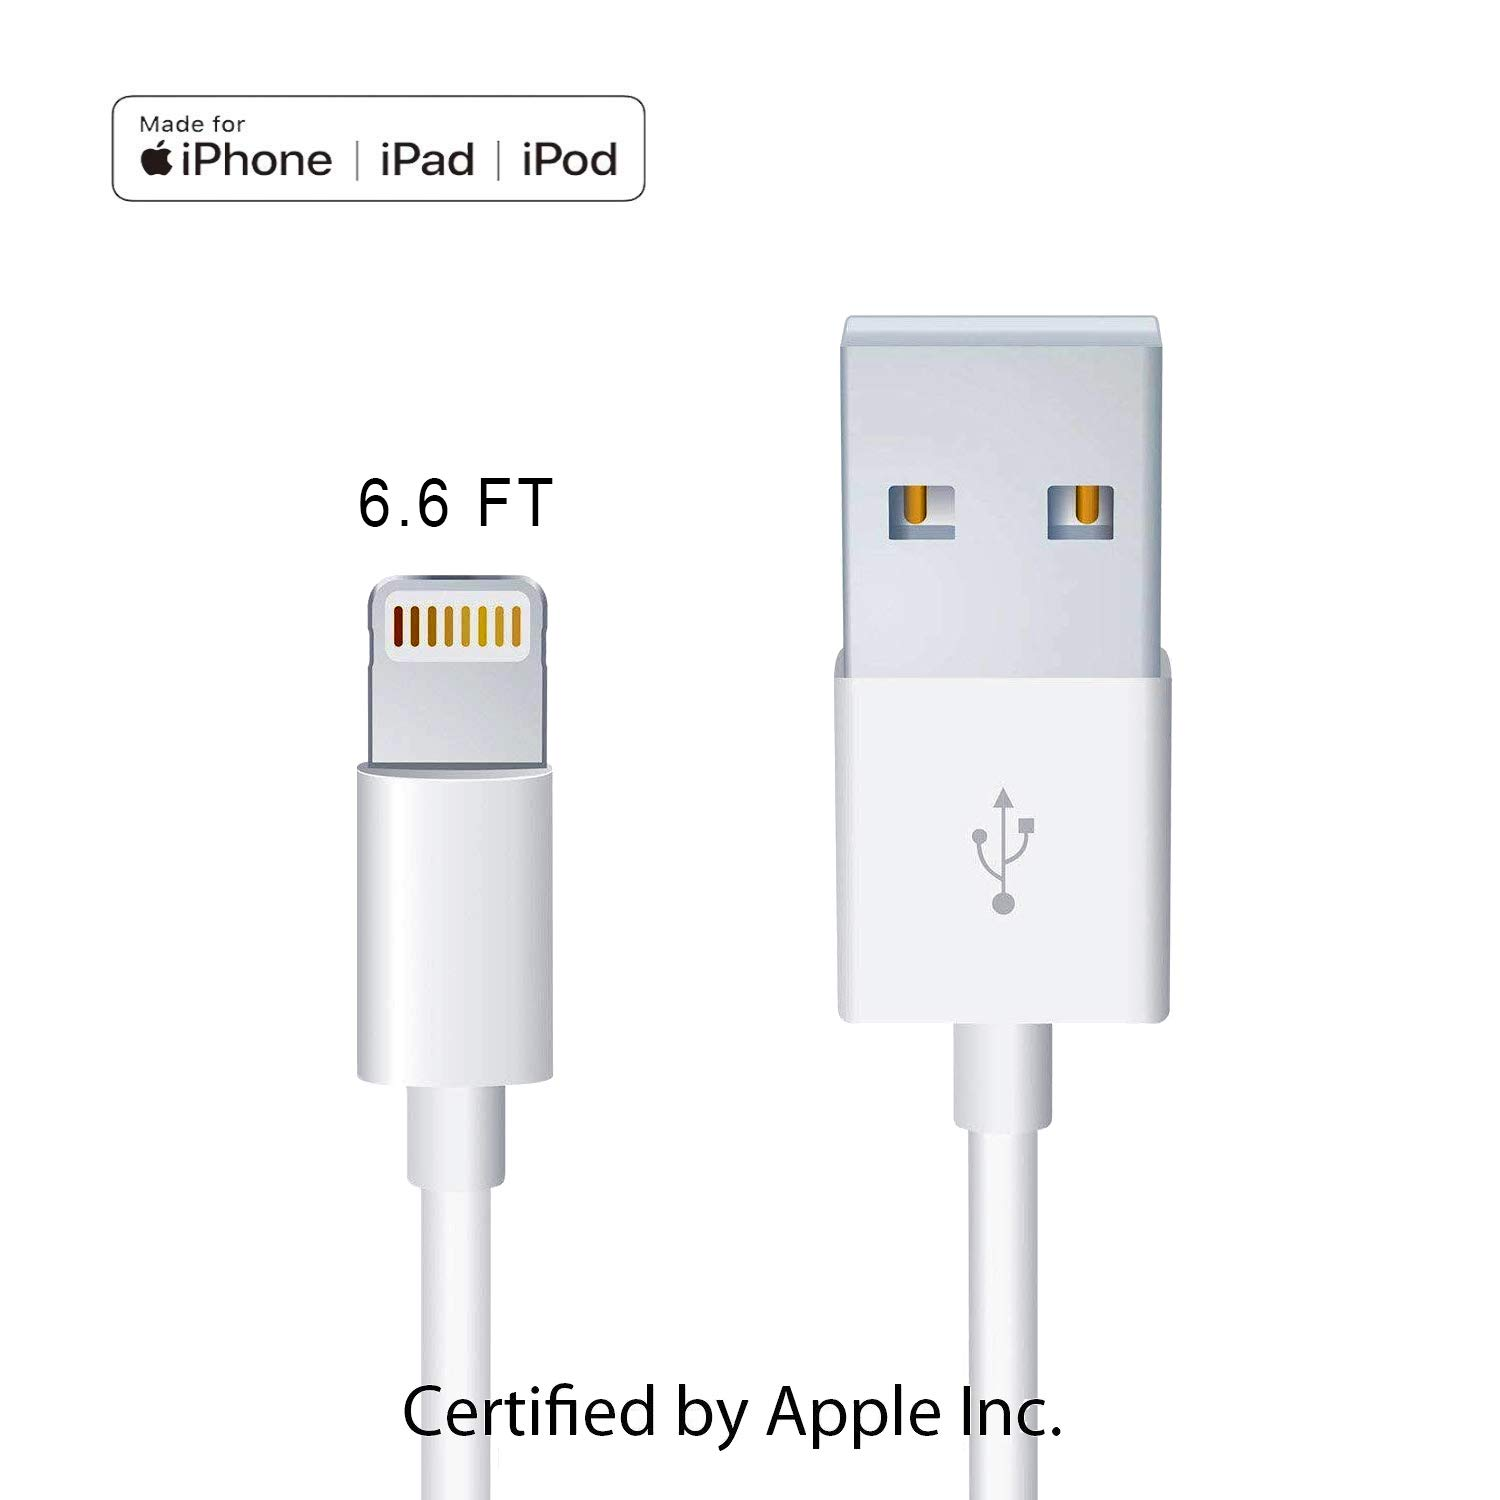 Apple Original Charger [Apple MFi Certified] Lightning to USB Cable Compatible iPhone Xs Max/Xr/Xs/X/8/7/6s/6plus/5s,iPad Pro/Air/Mini,iPod Touch(White 2M/6.6FT) Original Certified